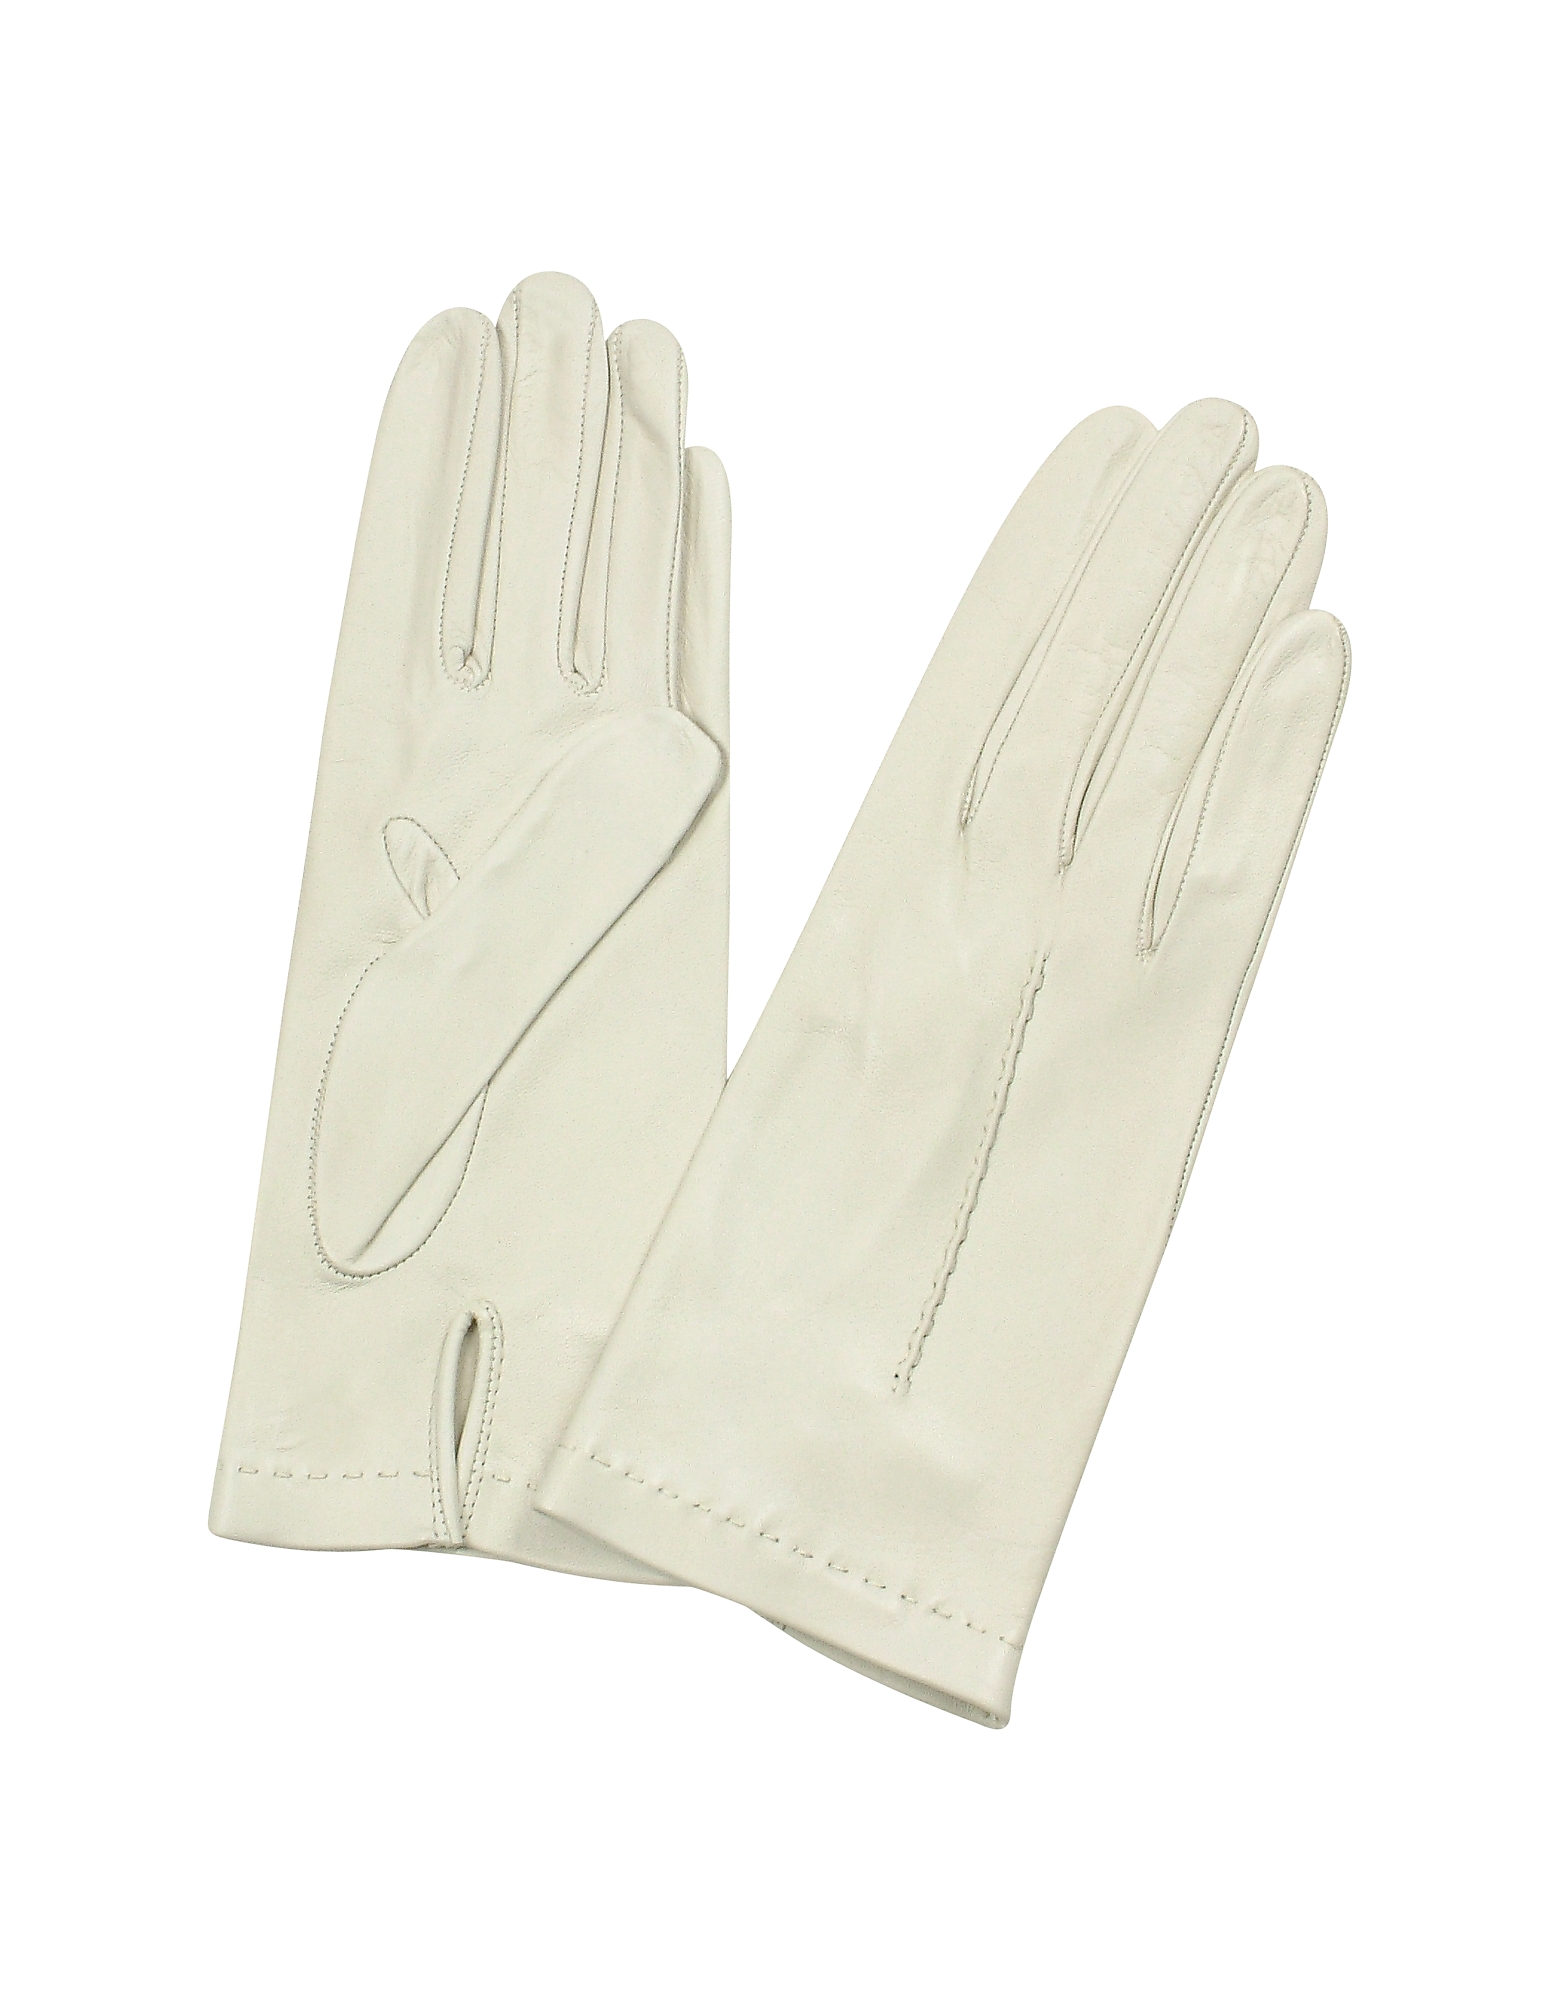 Forzieri Women's Gloves, Women's Ivory Unlined Italian Leather Gloves